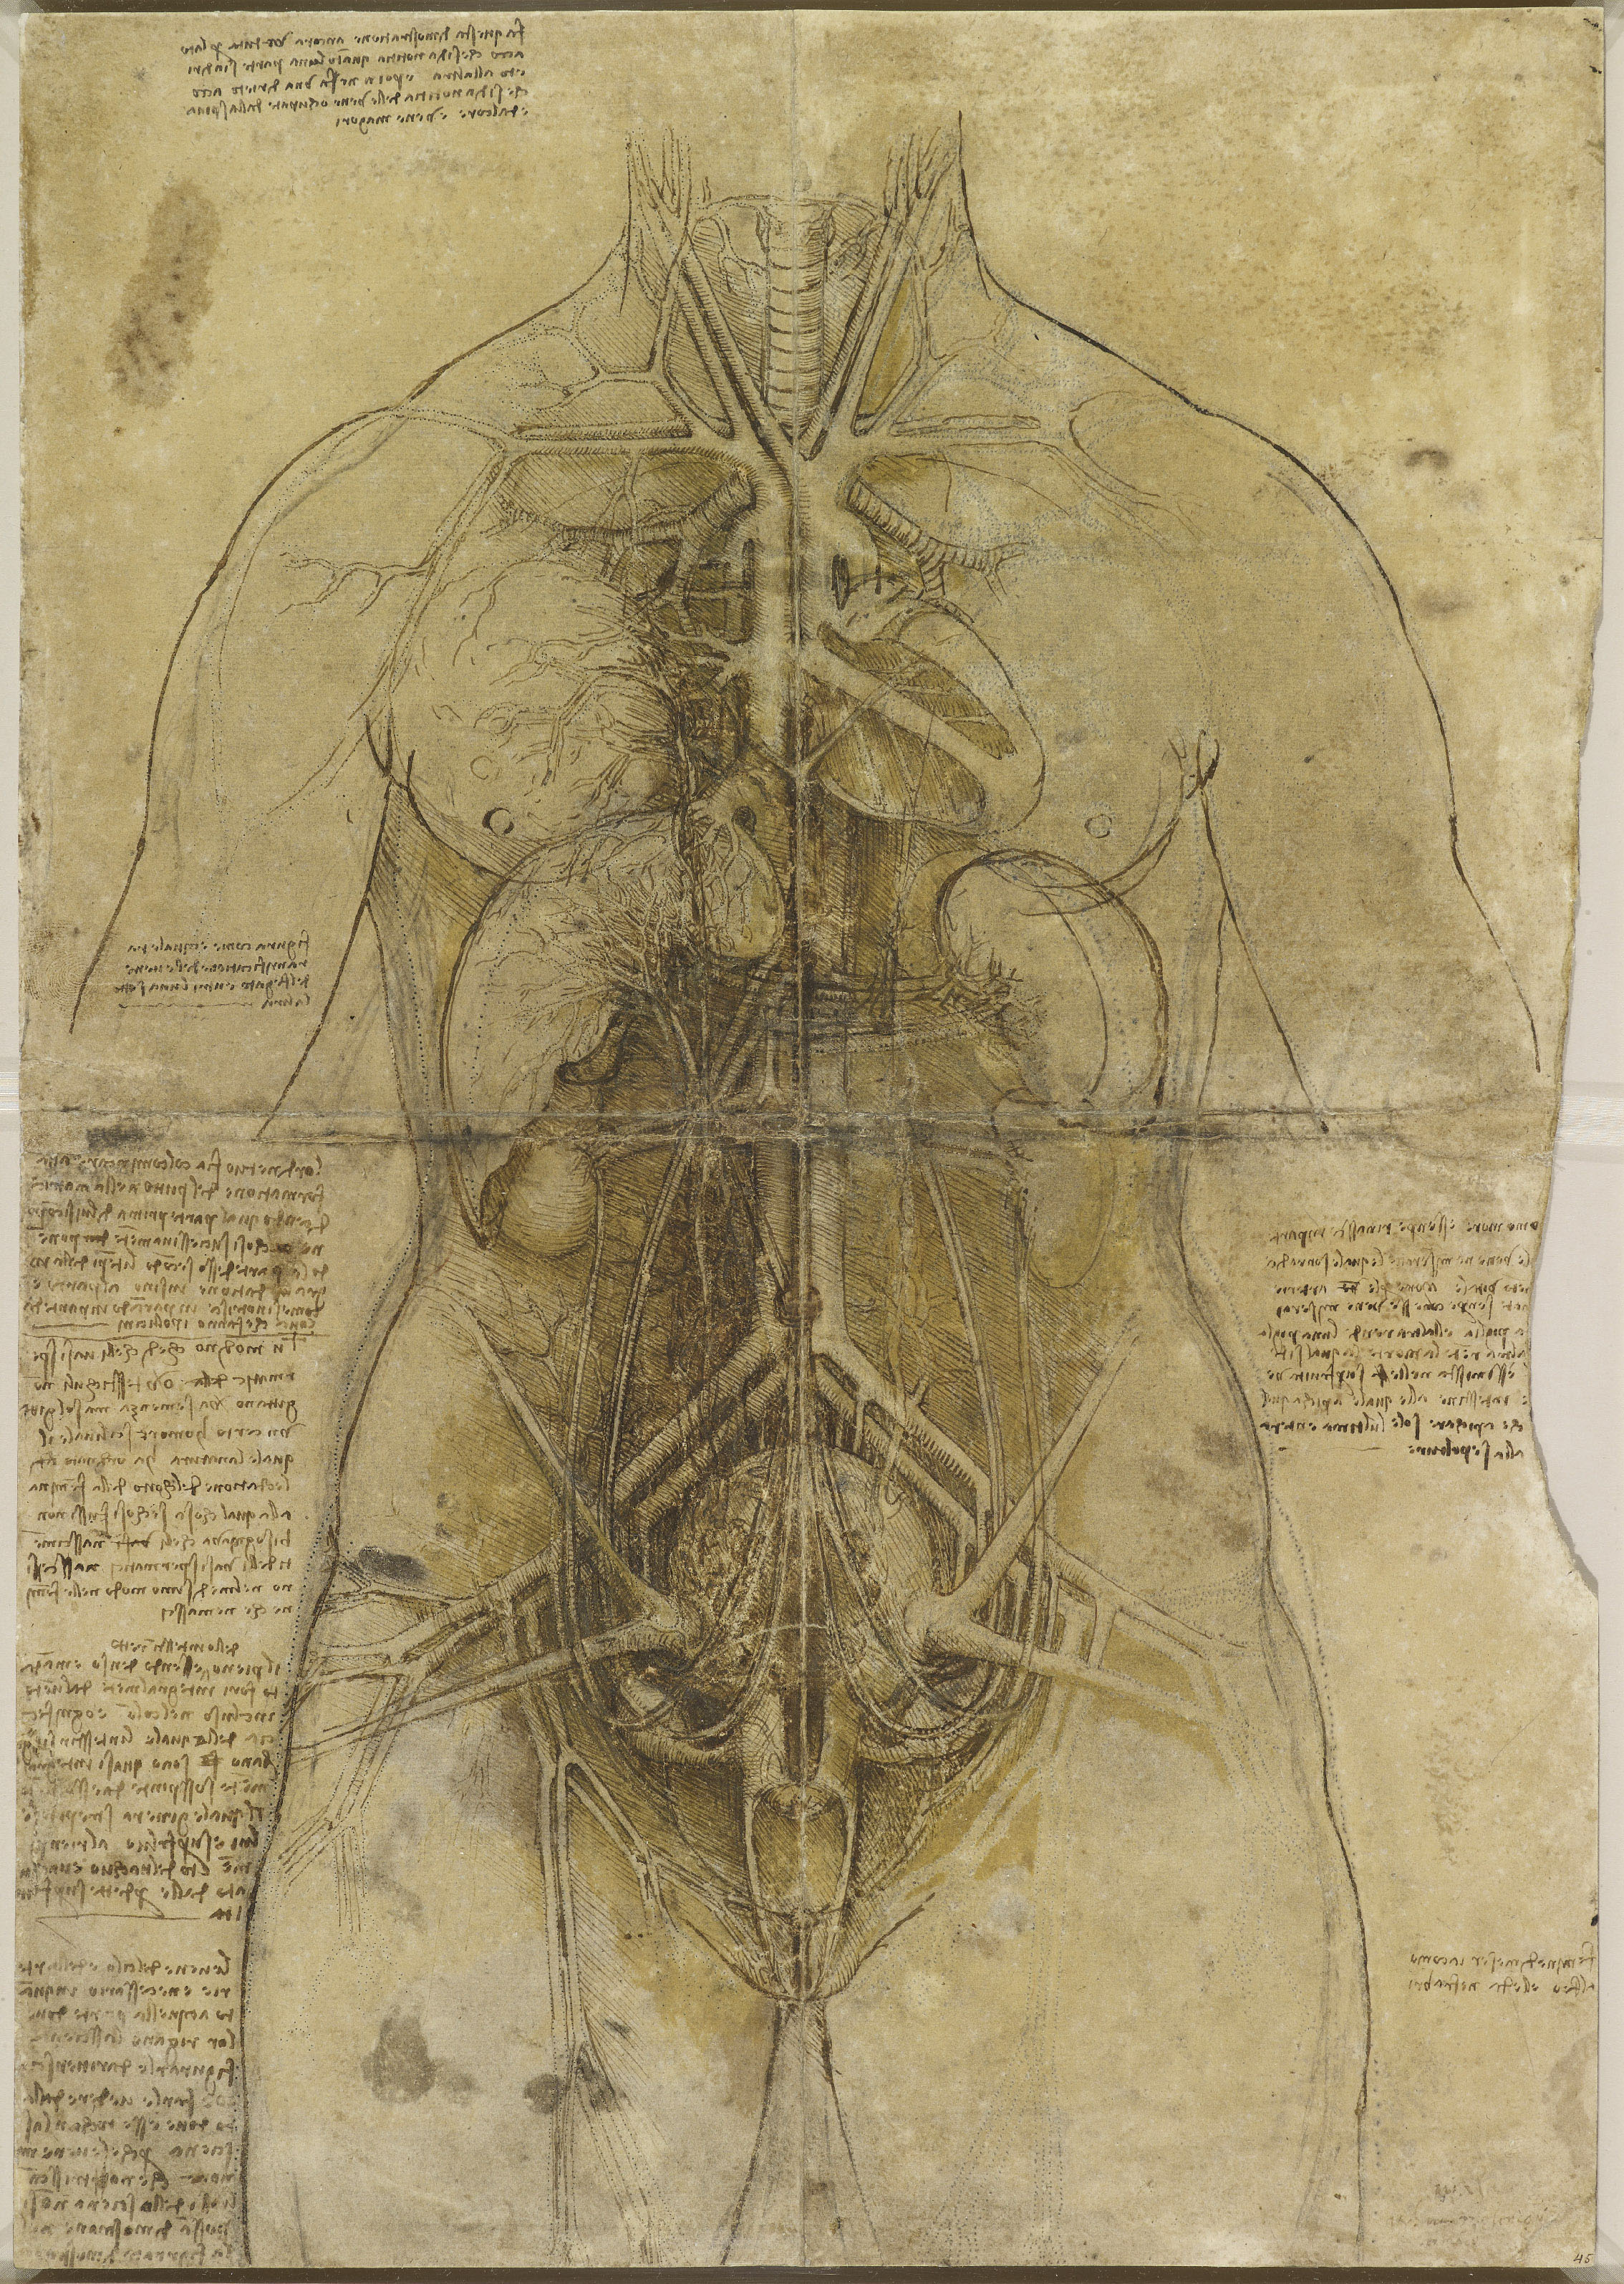 Leonardo da Vinci, 'The cardiovascular system and principal organs of a woman', c.1509-10